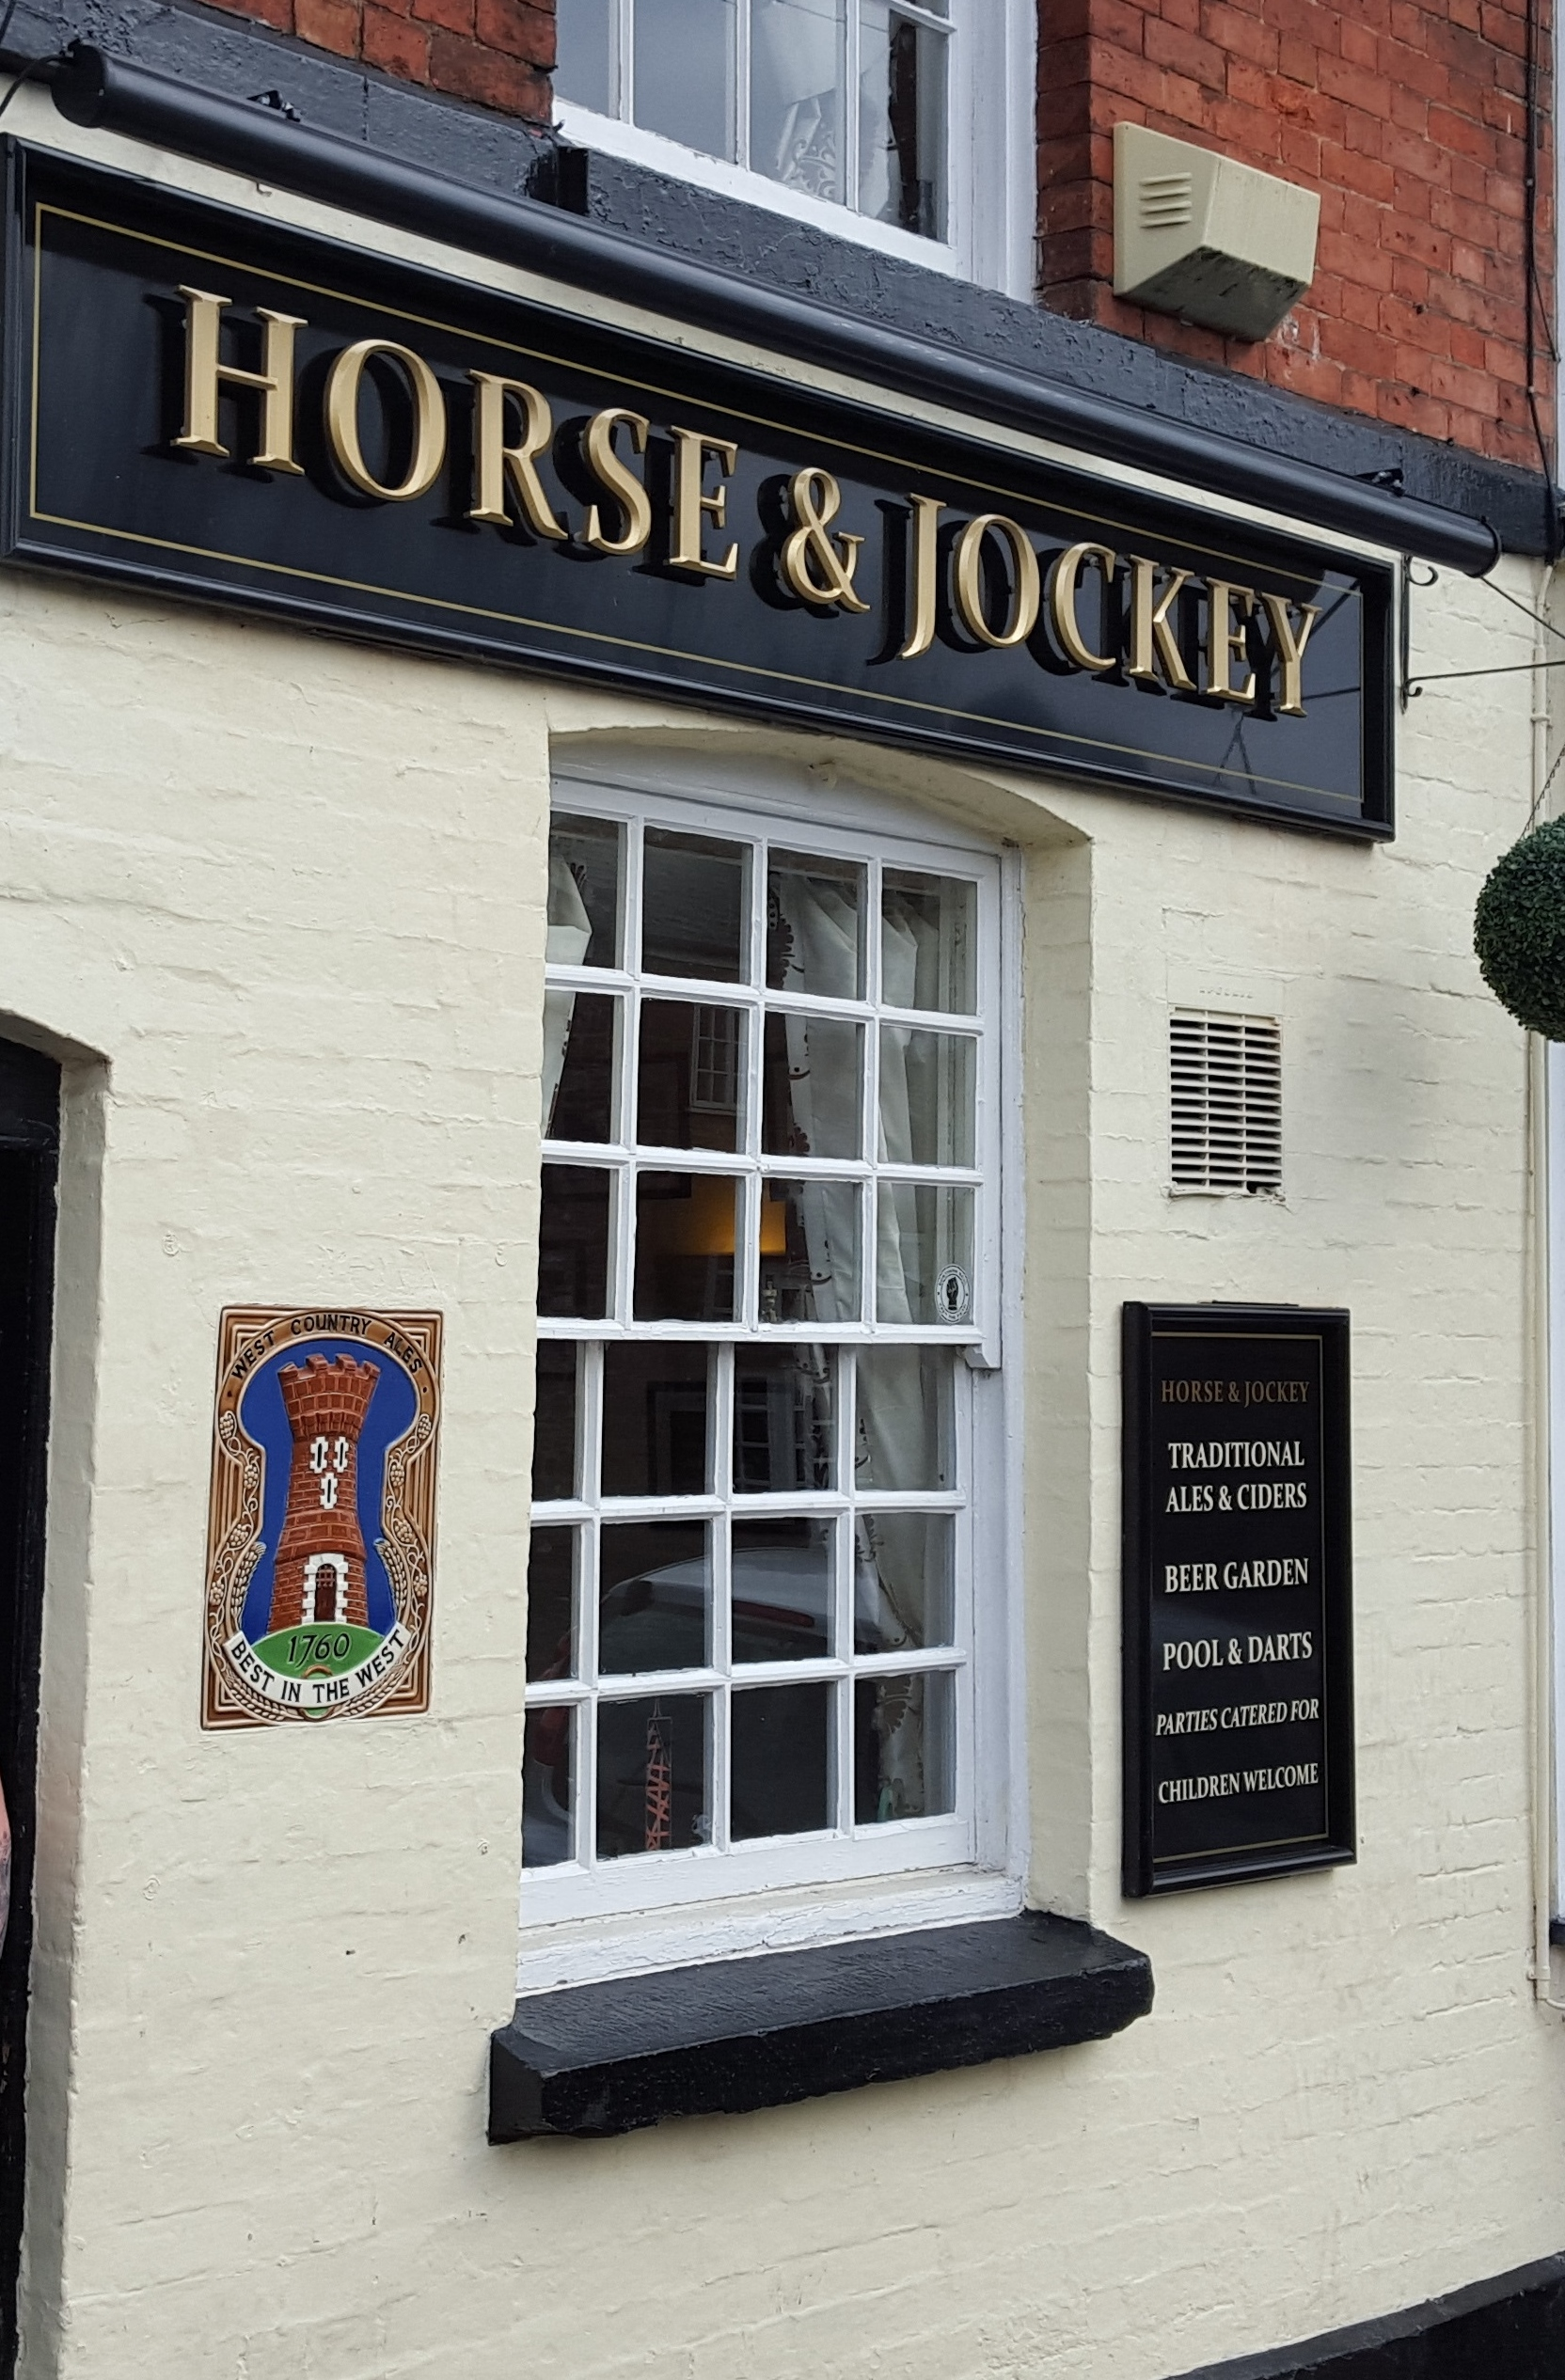 The Horse and Jockey in Ross-on-Wye.